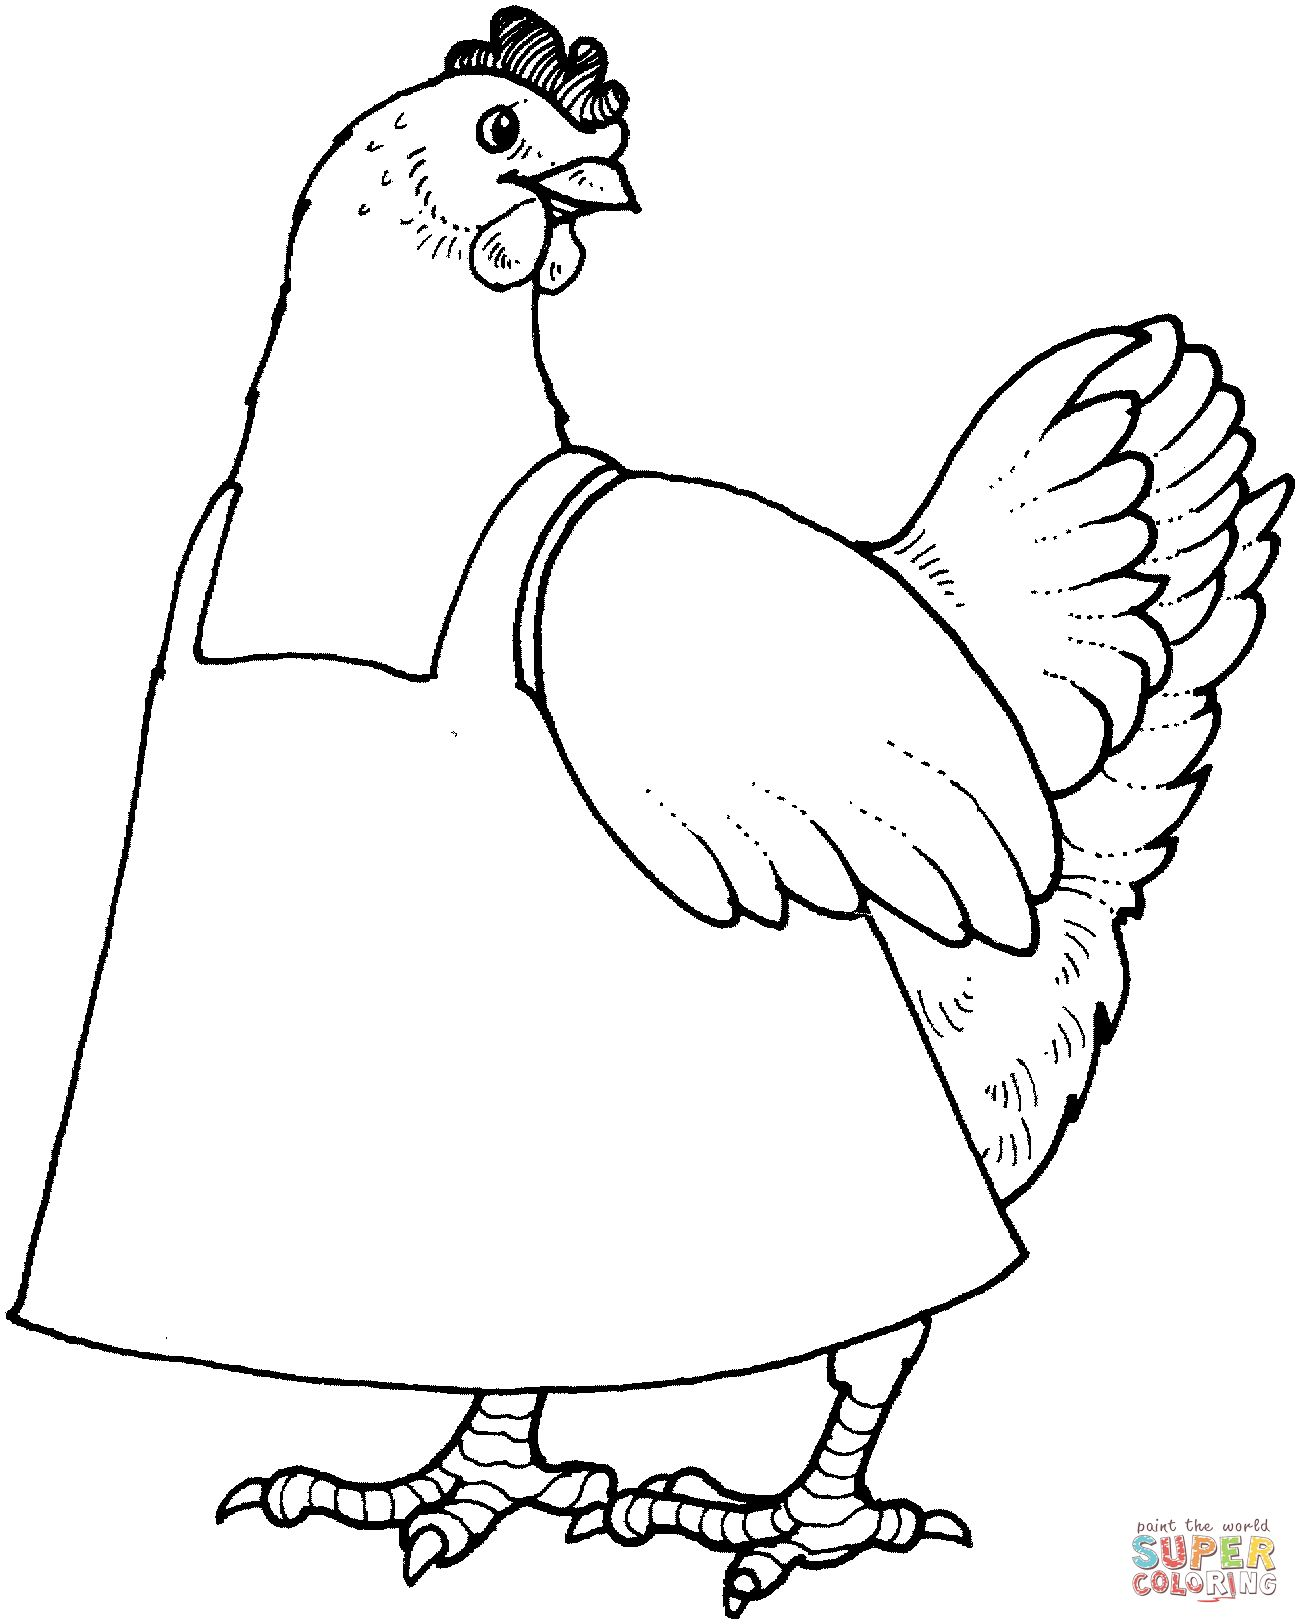 chicken coloring pages chicken colouring page part 6 free resource for teaching coloring chicken pages 1 1